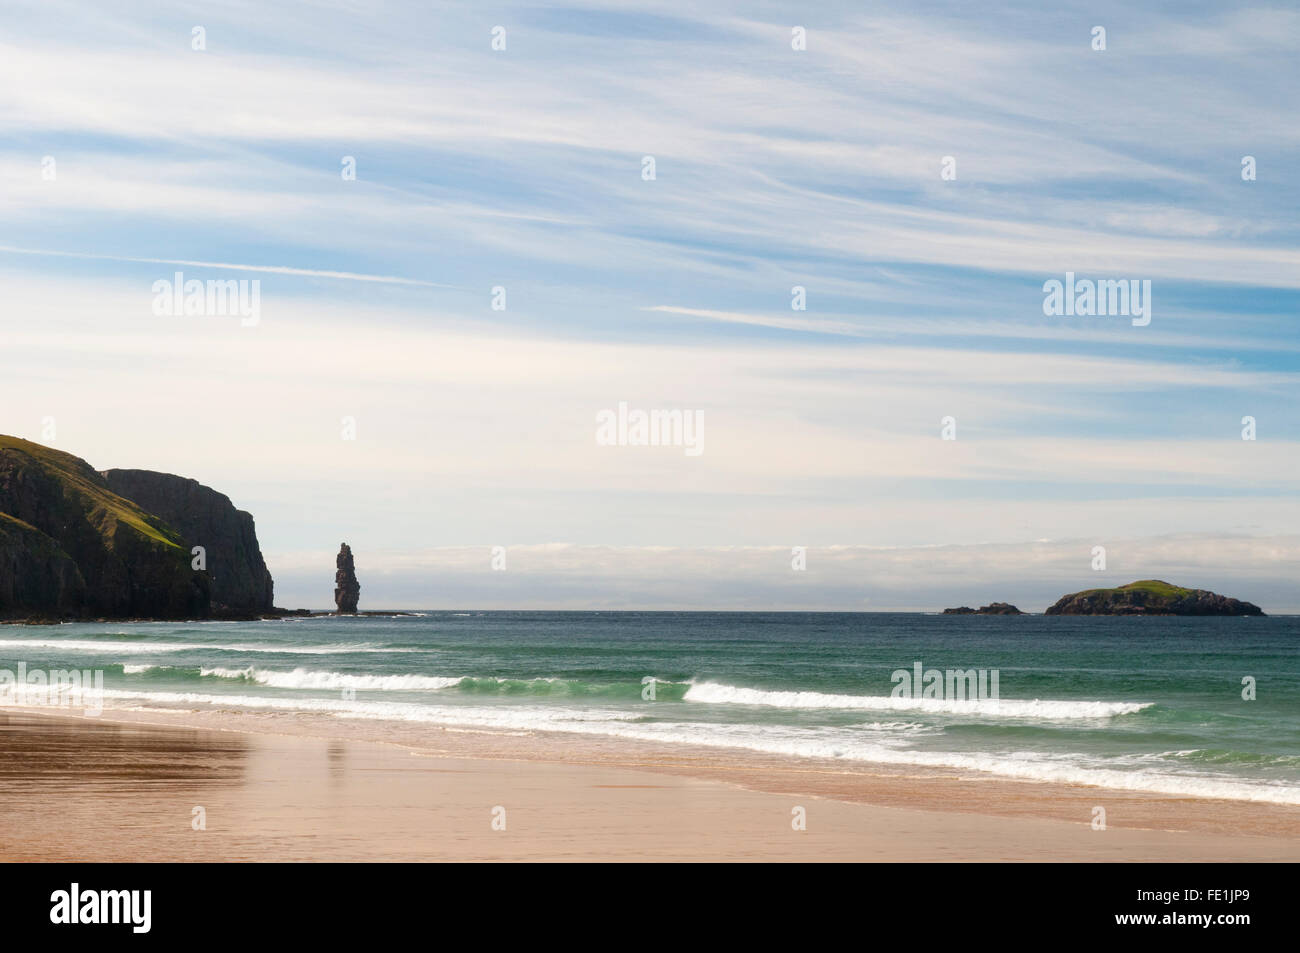 The sea stack Am Buachaille and the island of  Am Balg just off the headland of Rubh' a Bhuachaille seen from - Stock Image